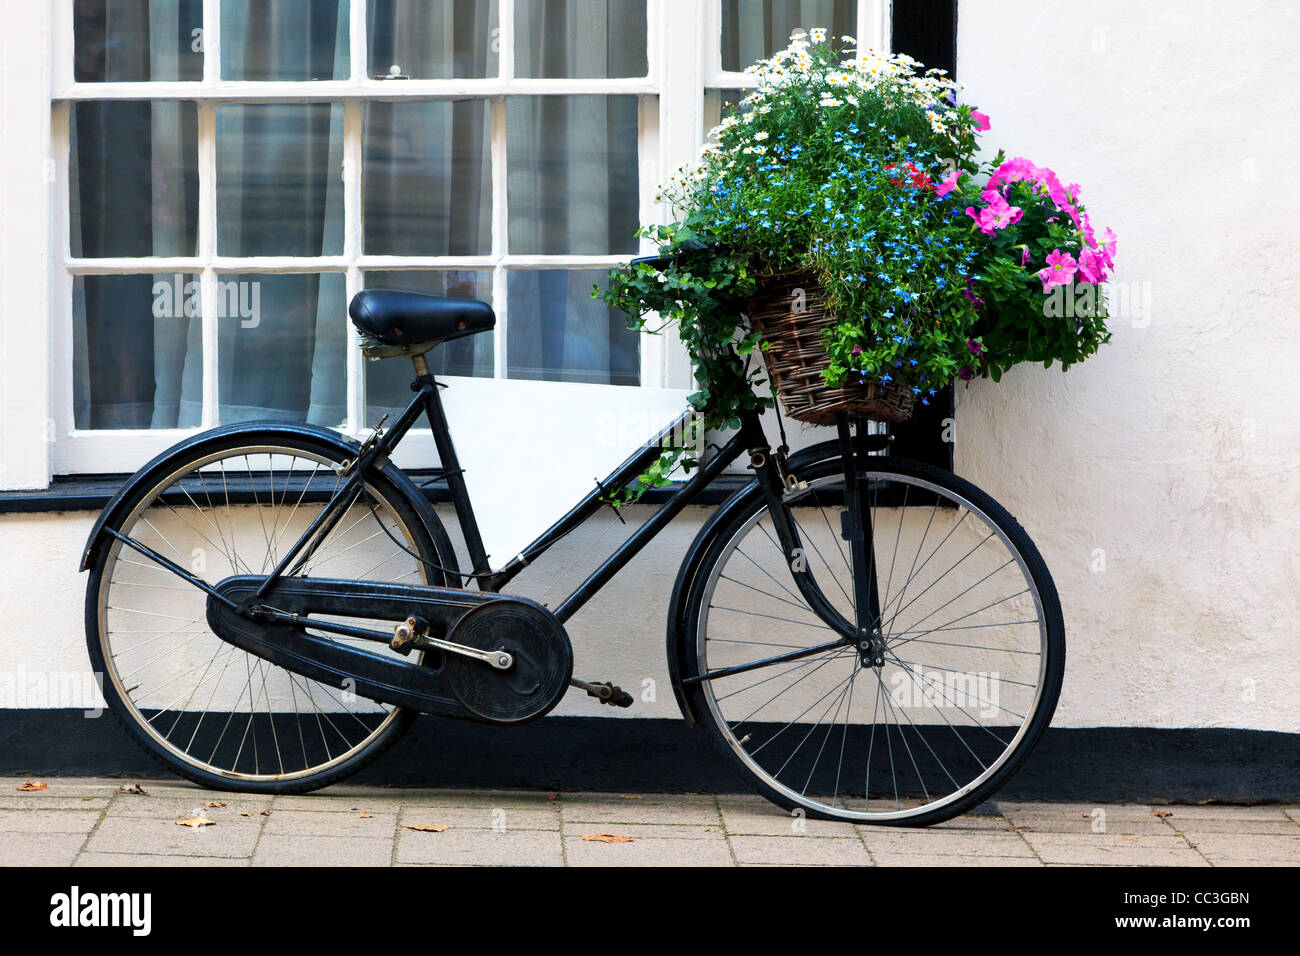 Photo of an old bicycle with a basket full of flowers and a blank advertising board in the frame. - Stock Image